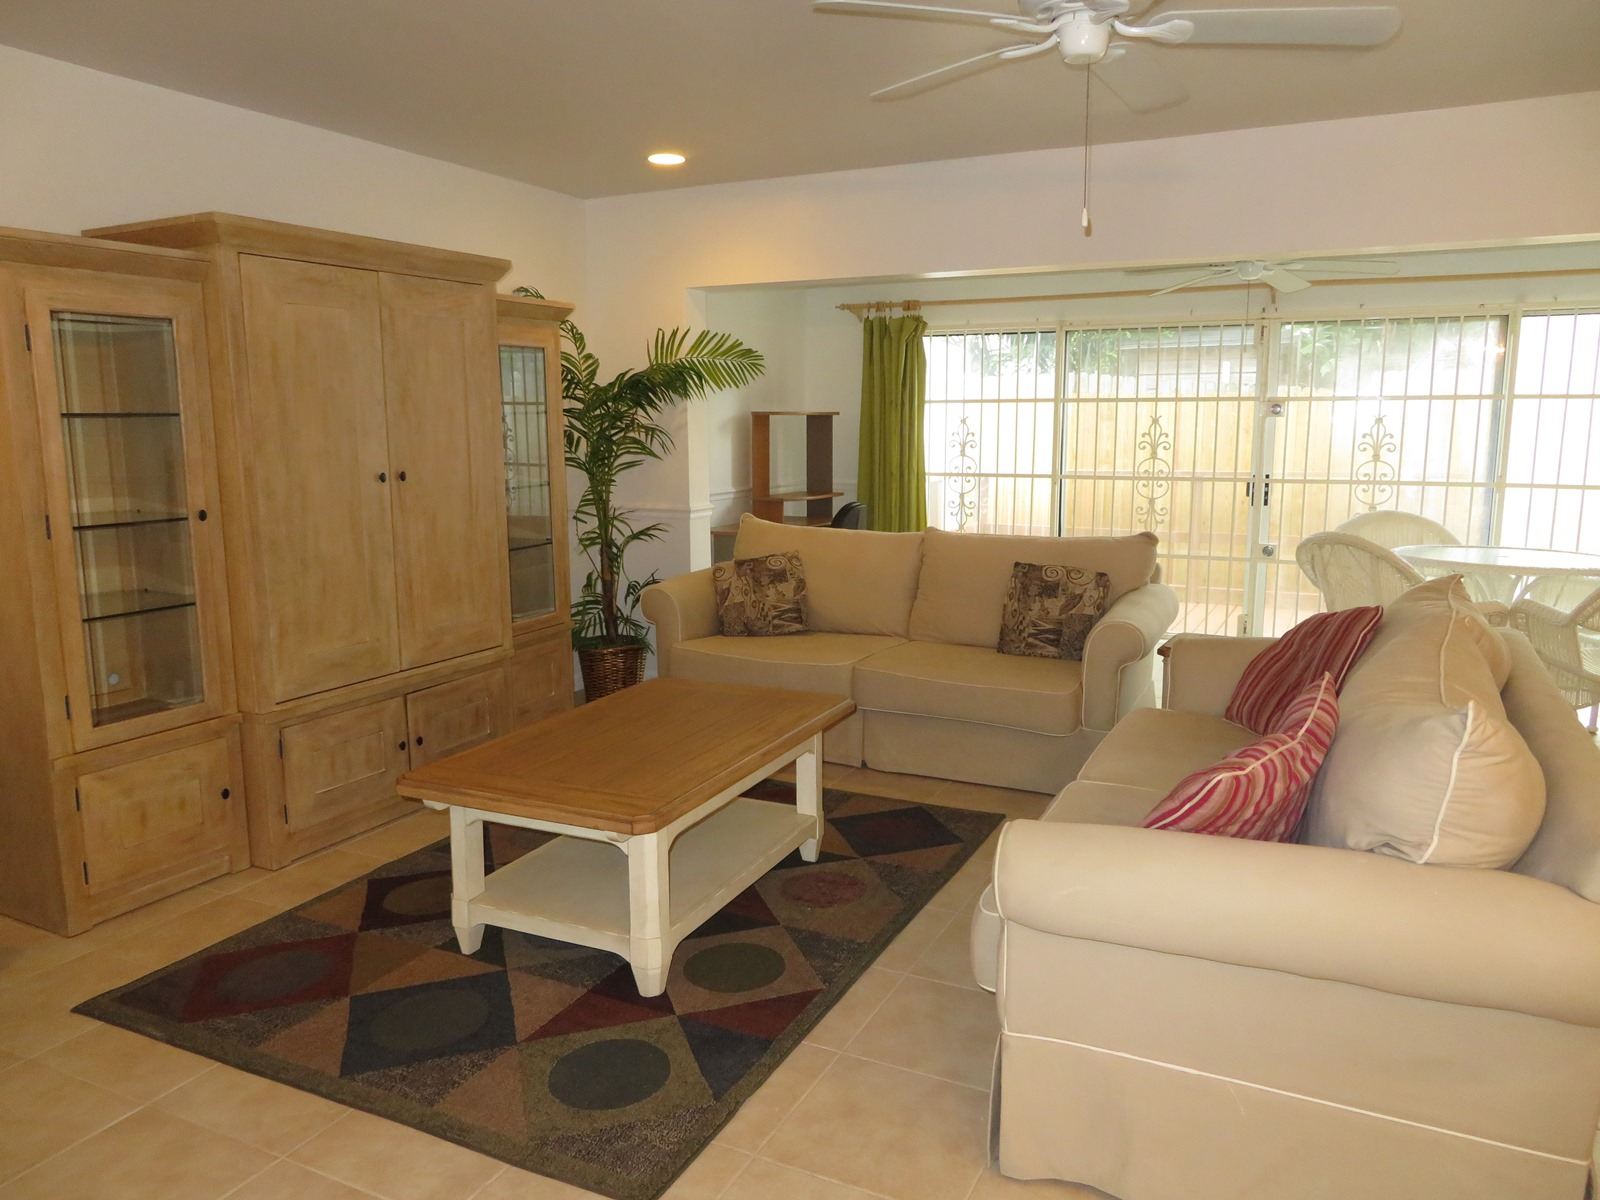 Additional photo for property listing at Spacious 3 bedroom condo with Garage near town and Cable Beach MLS31174 Nautica, Nassau And Paradise Island, Bahamas